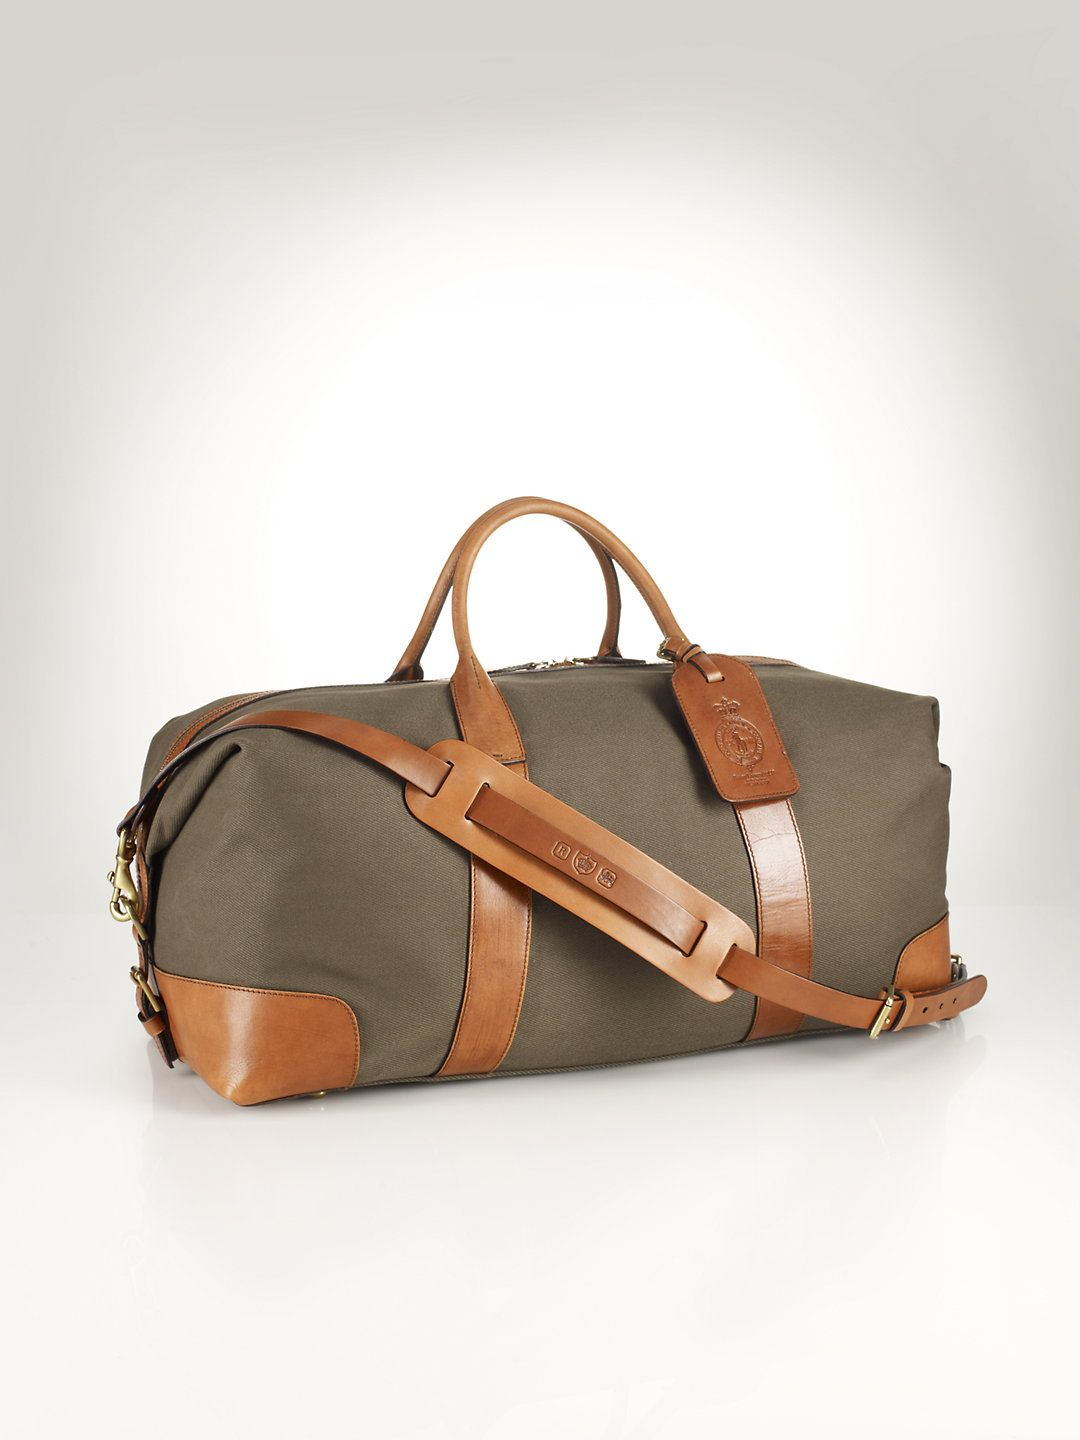 eebd11281da1 Canvas Leather Weekend Bag - Travel Bags Bags Business Accessories -  RalphLauren.com